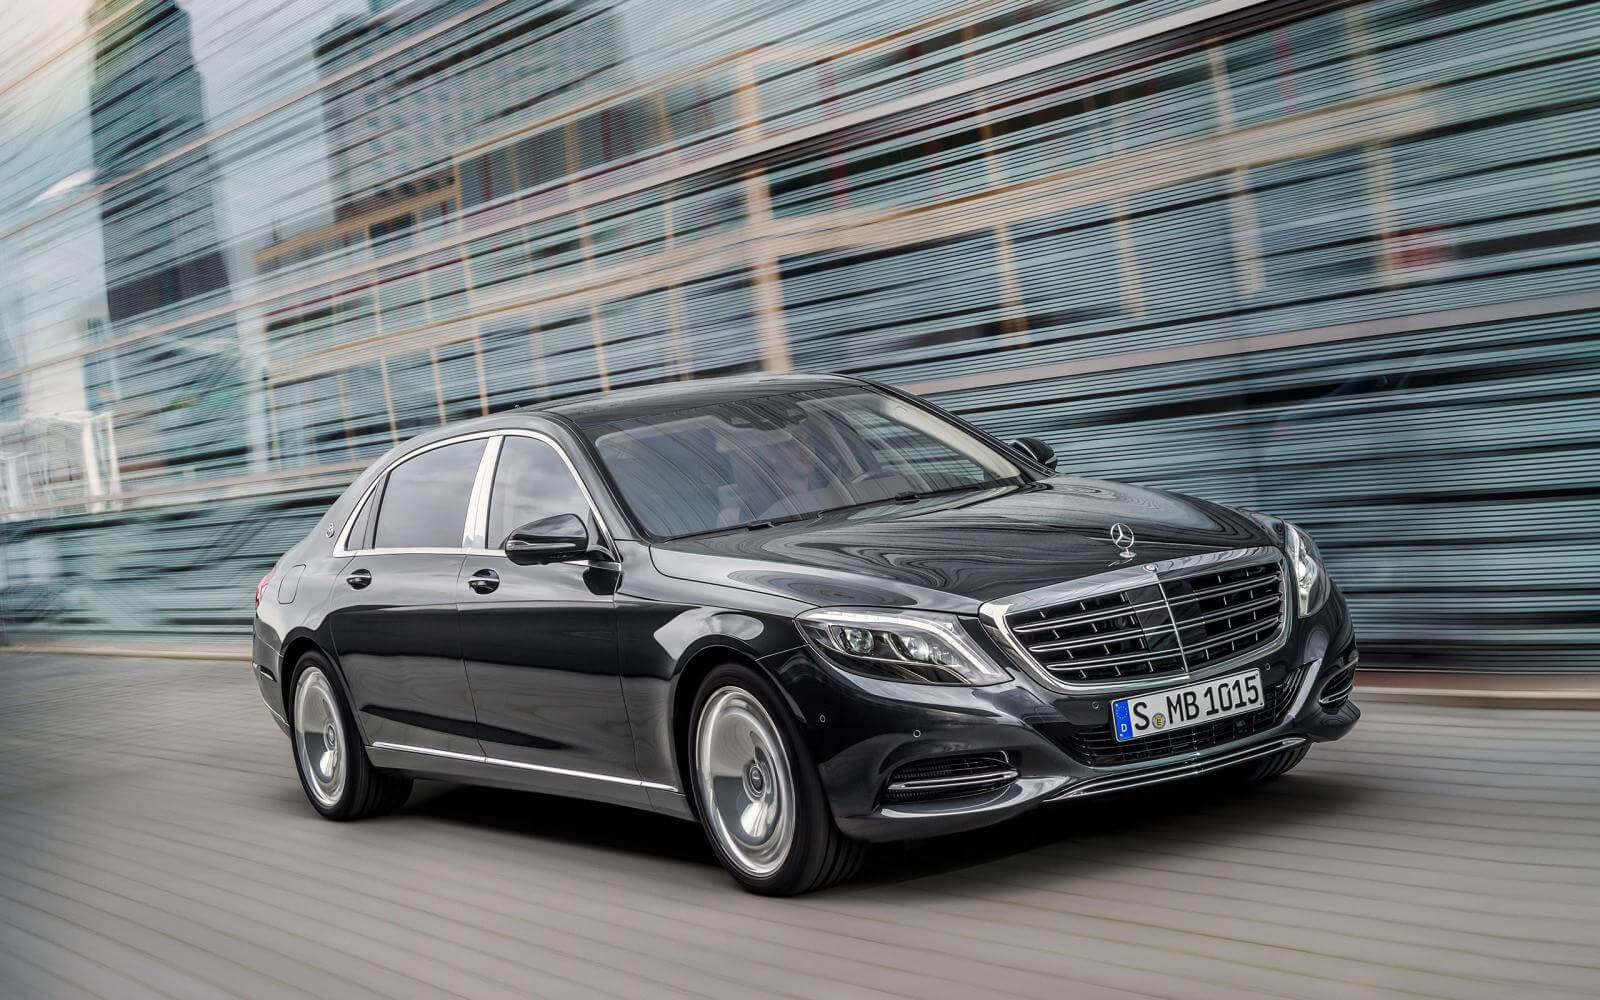 mercedes-benz maybach wallpapers, free download